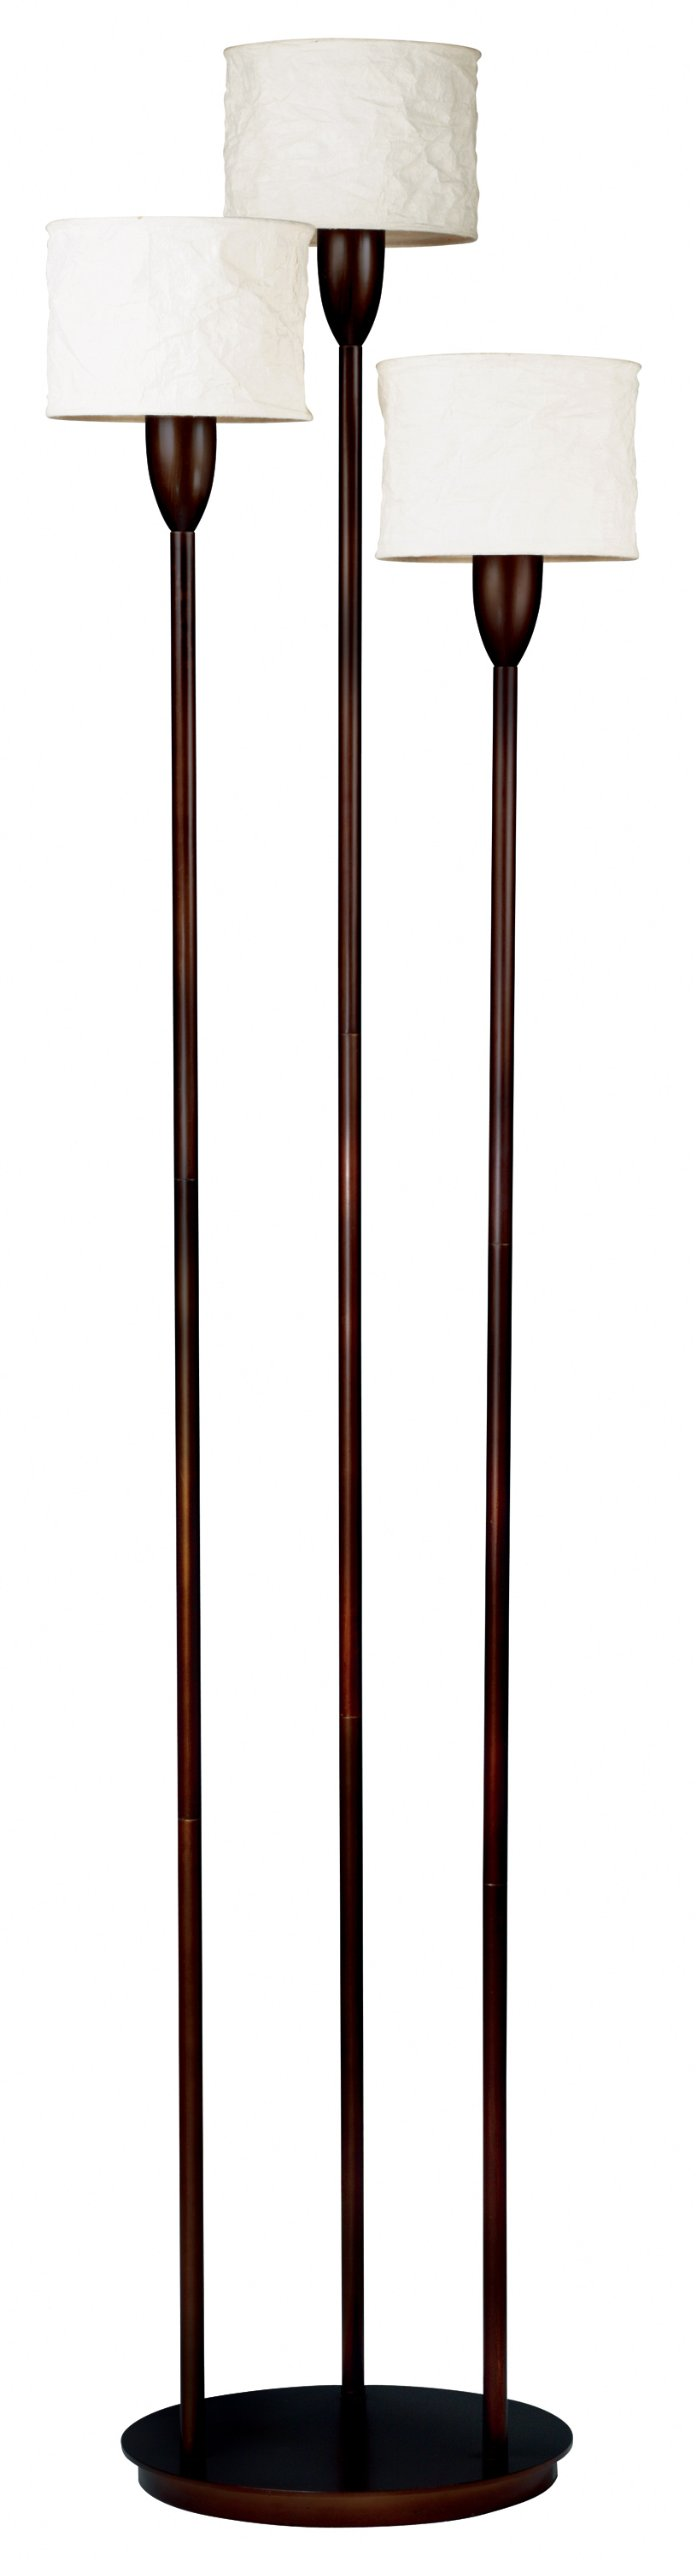 Kenroy Home 30673ORB 3 Light Crush Torchiere, Oil Rubbed Bronze